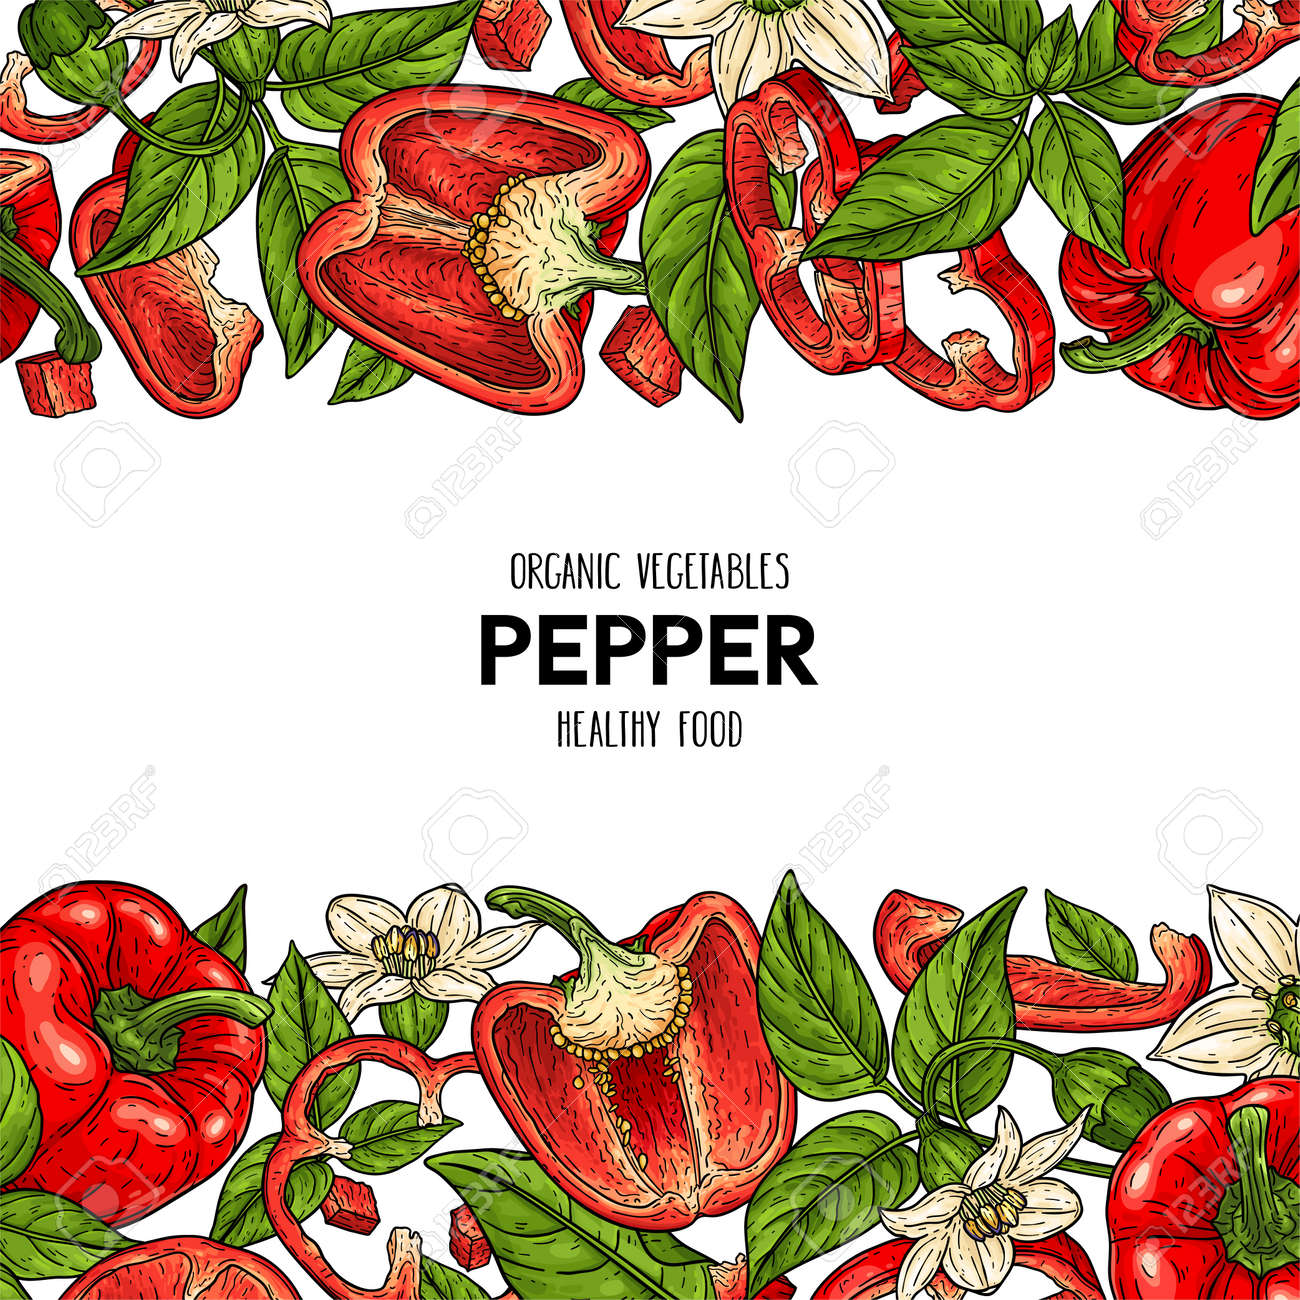 Vector hand drawn frame with bell peppers, slices, halves, pieces, flower, branch and leaves. Organic vegetables illustration - 168597398